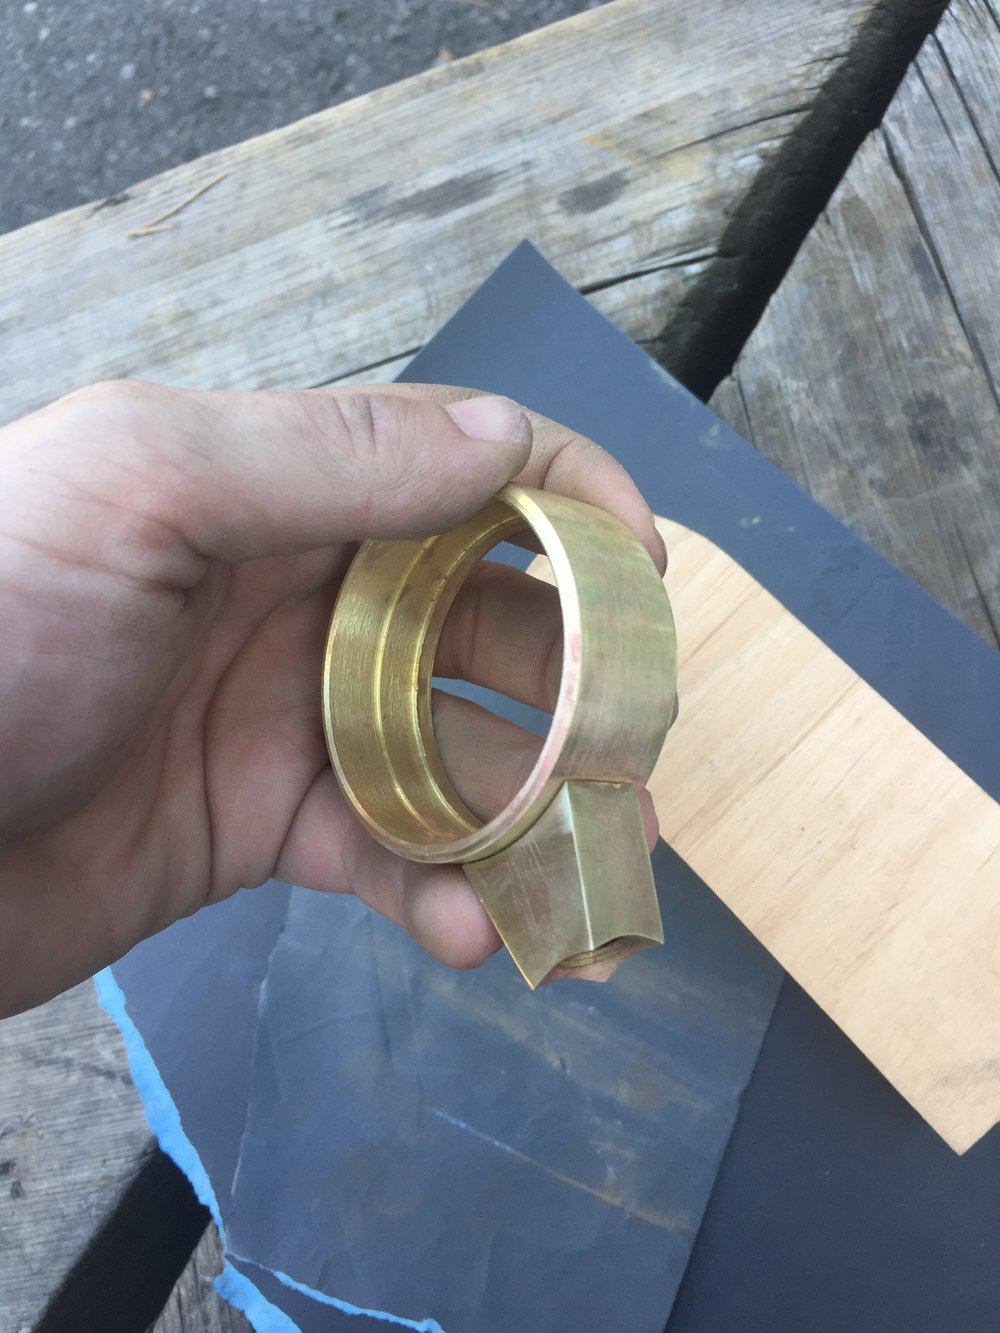 The magnifying glass required multiple manufacturing processes. The handle, ring, and lens were turned on the lathe, the lug was machined on the mill, and finally the lug and ring were attached through brazing.